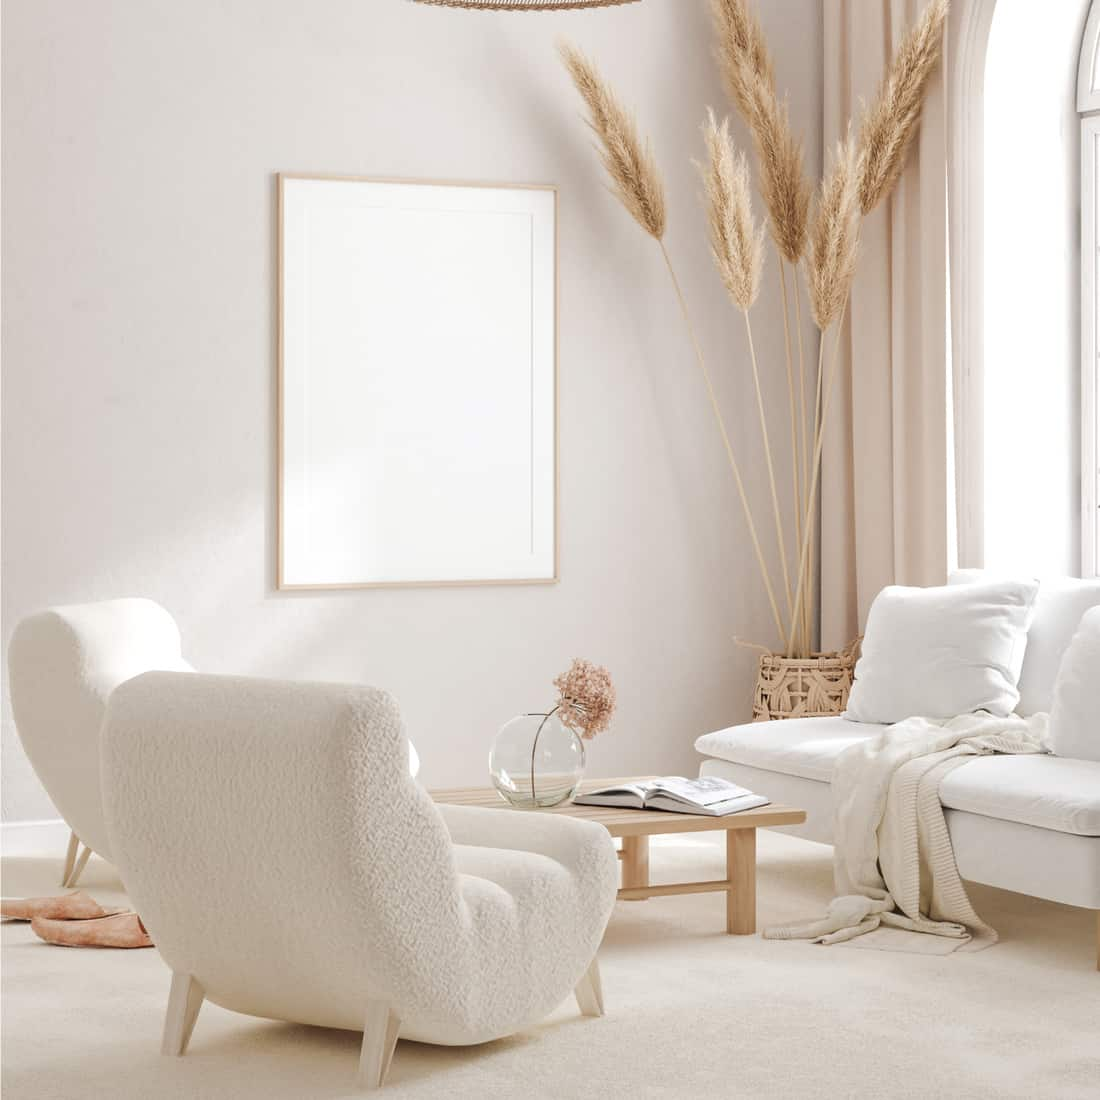 room in light pastel colors, Scandi-Boho style. White With Tan Accents